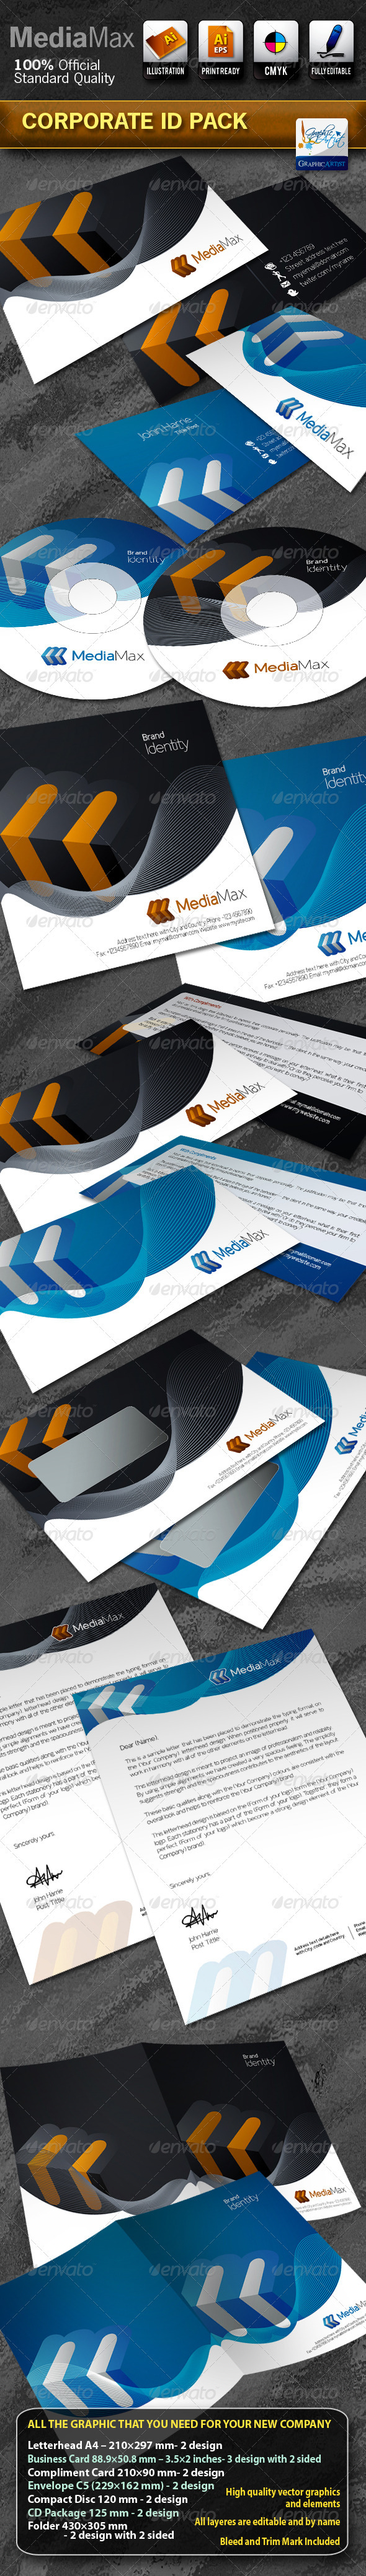 MediaMax Business Corporate ID Pack With Logo - Stationery Print Templates